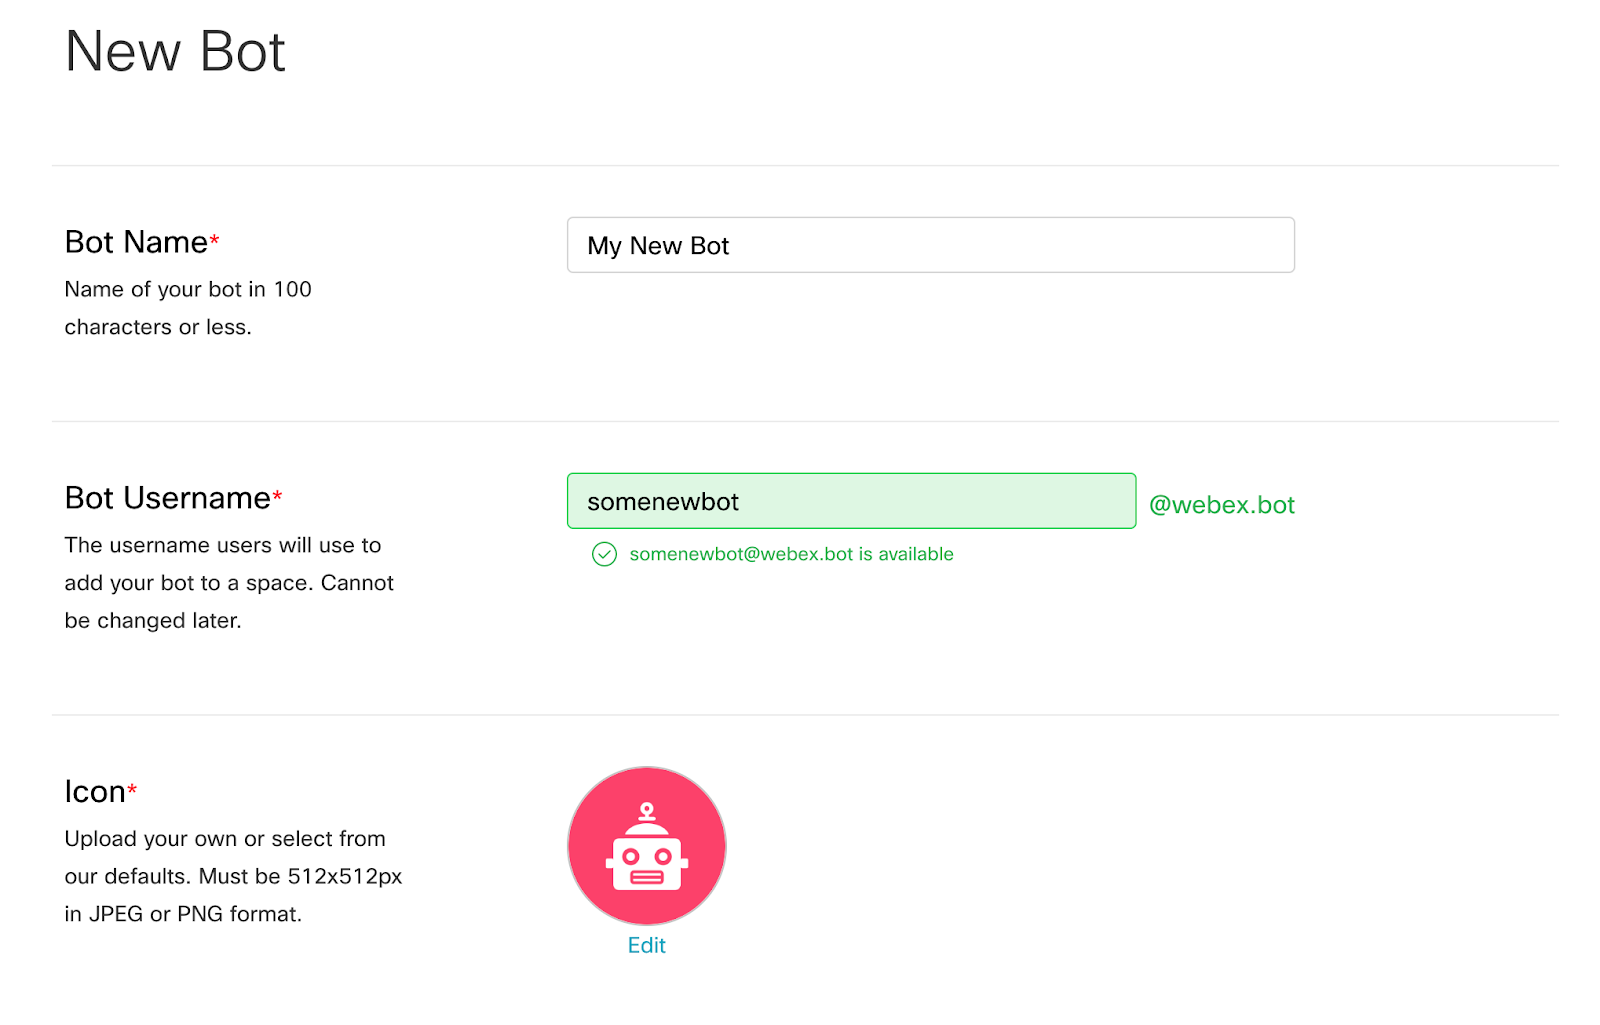 Turn your conversations into Trello tasks with Webex and Botkit